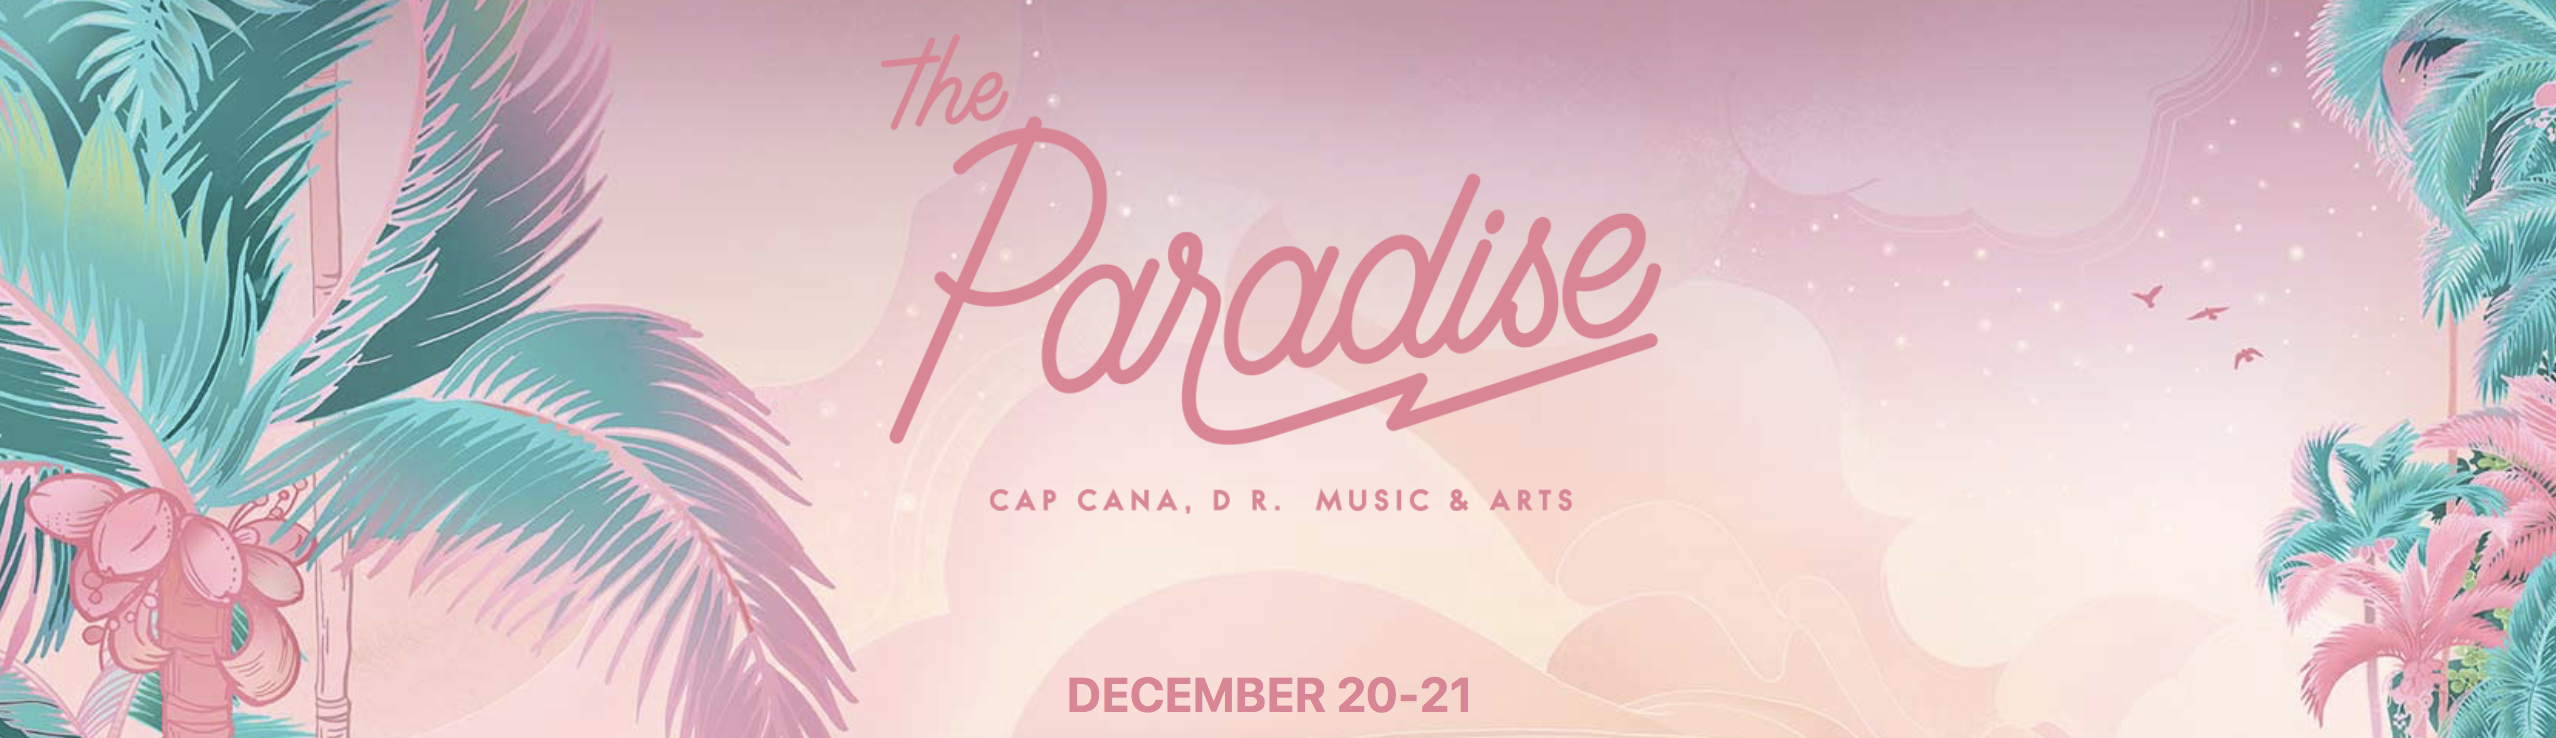 The Paradise Music Festival Announces Epic Lineup in the Dominican Republic